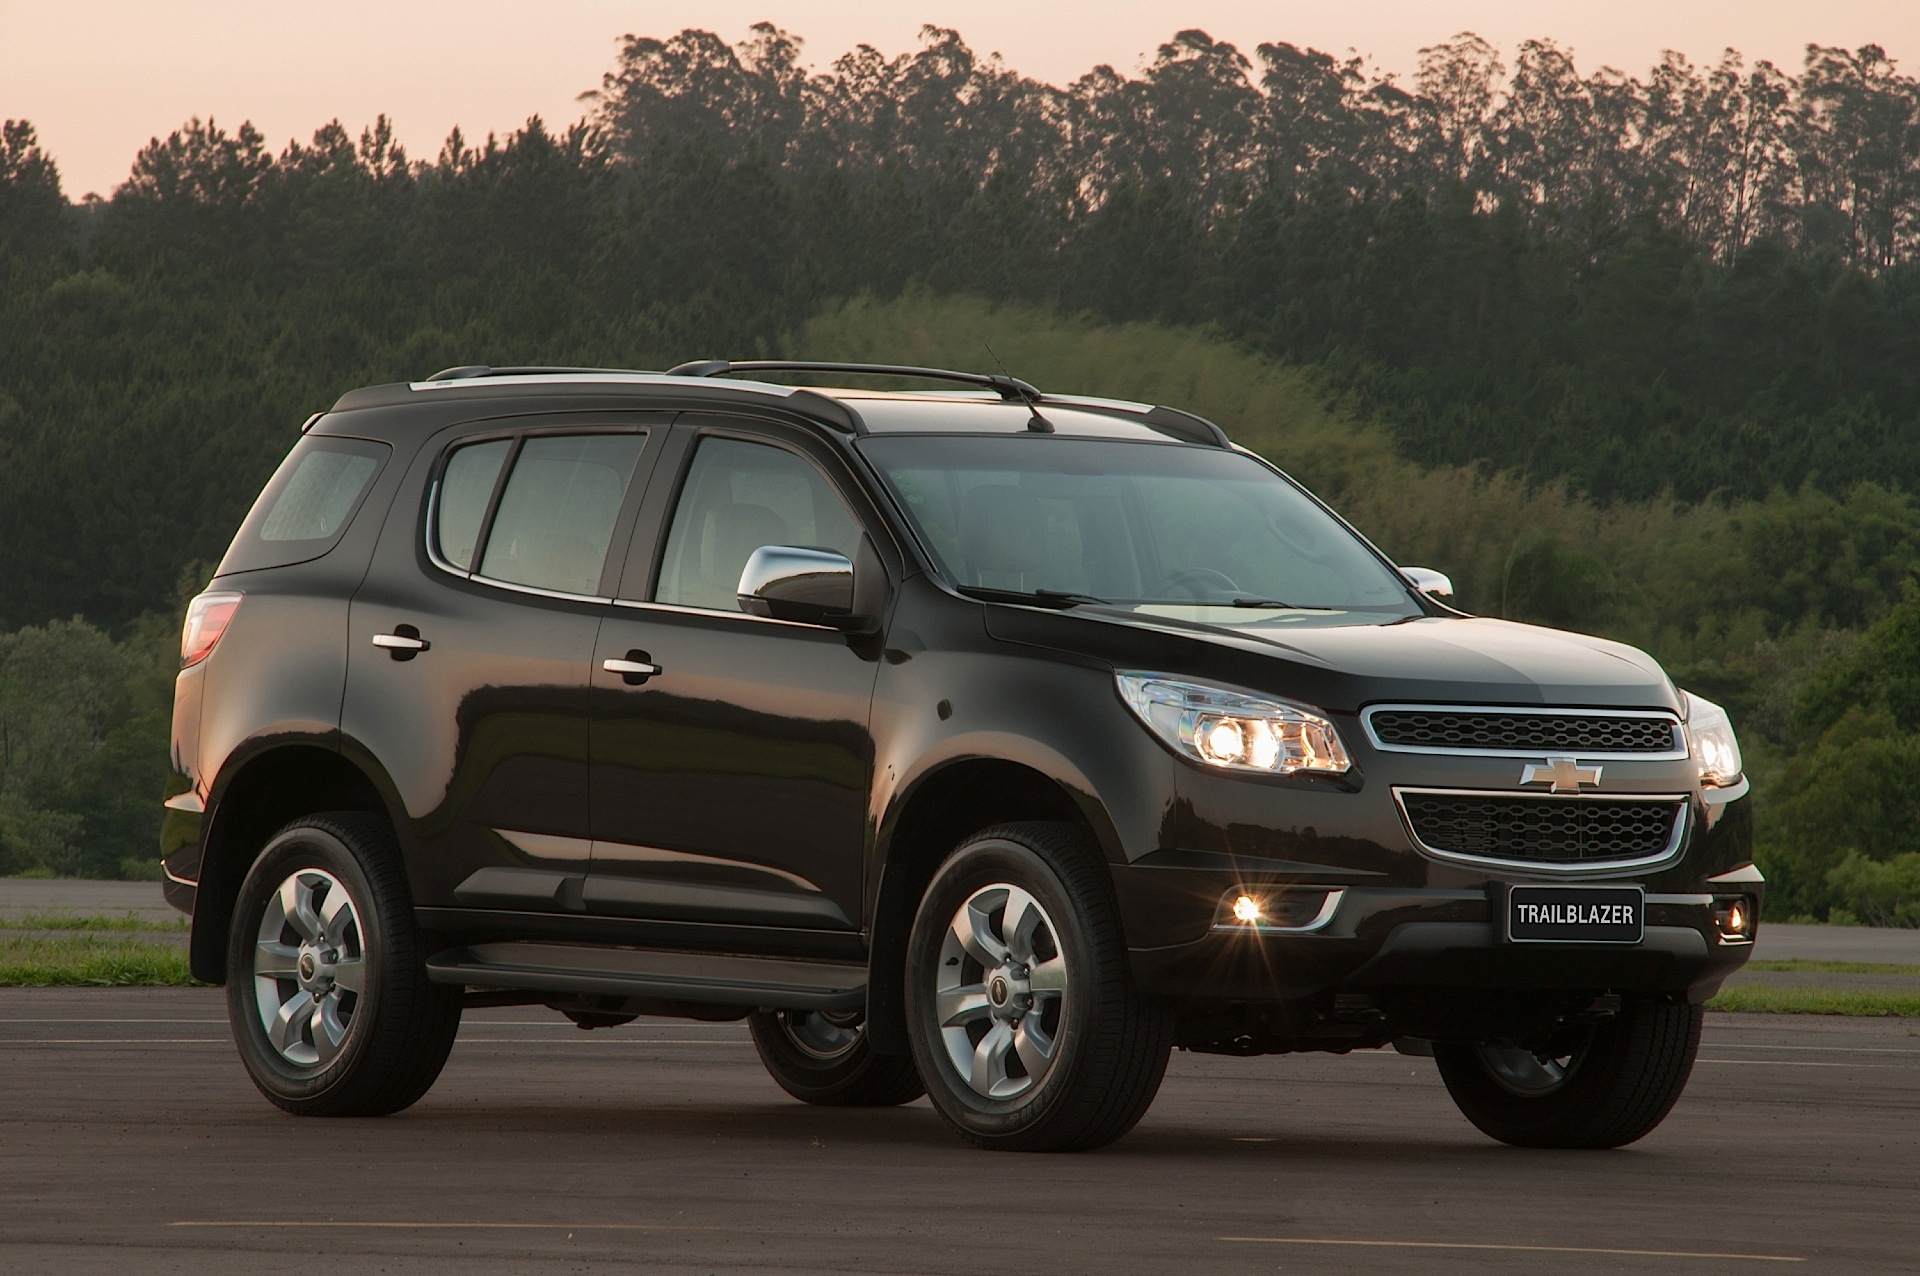 chevrolet trailblazer specs - 2012  2013  2014  2015  2016  2017  2018